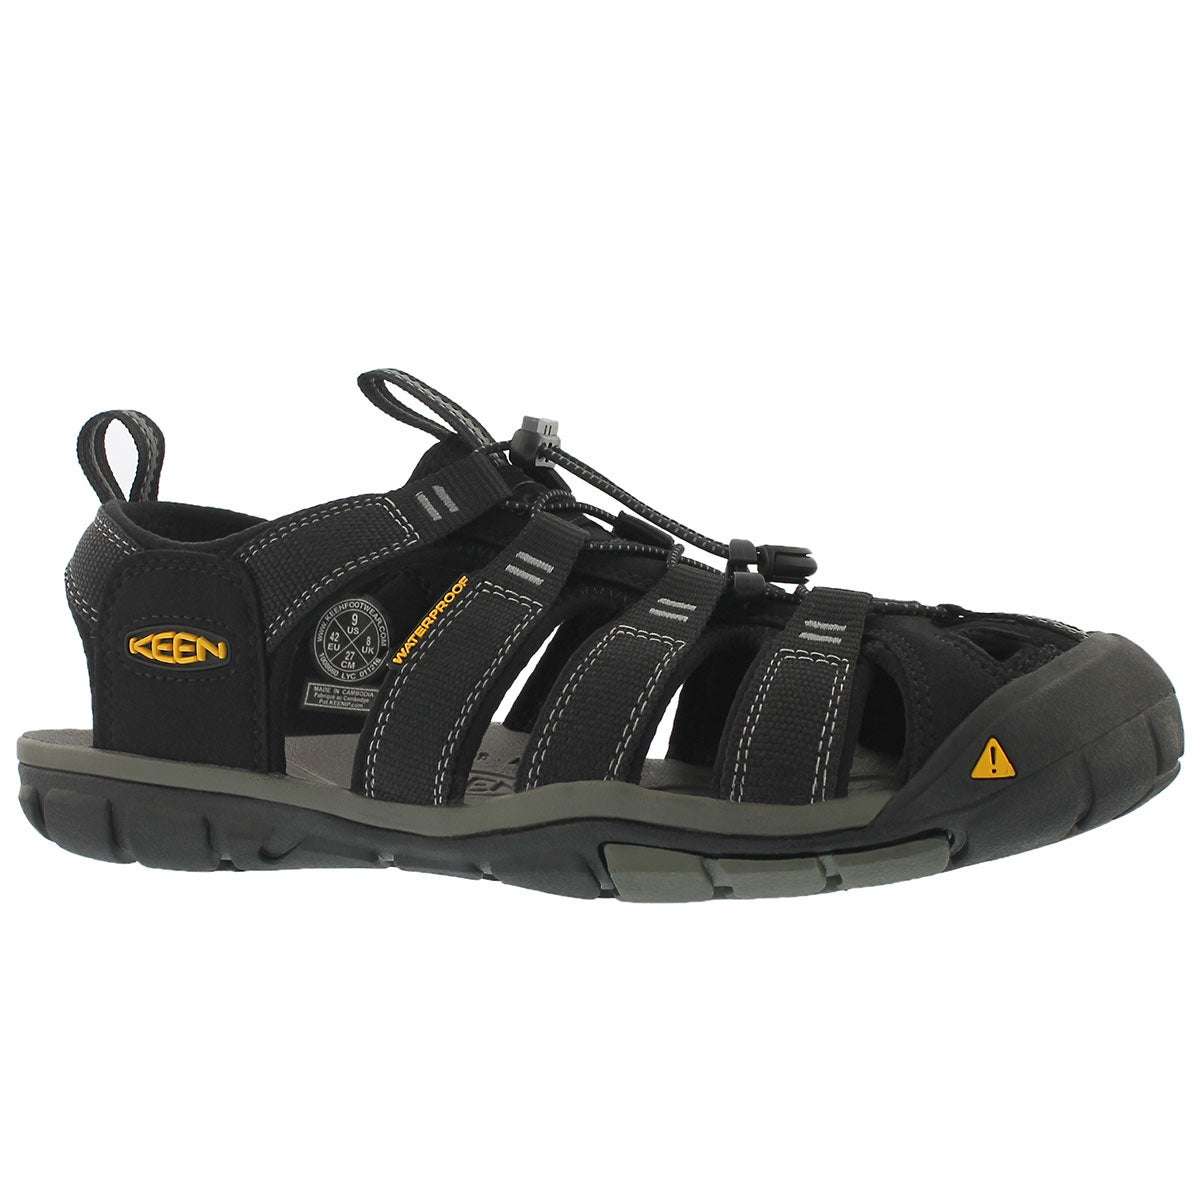 Men's CLEARWATER CNX blk/gry fisherman sandals